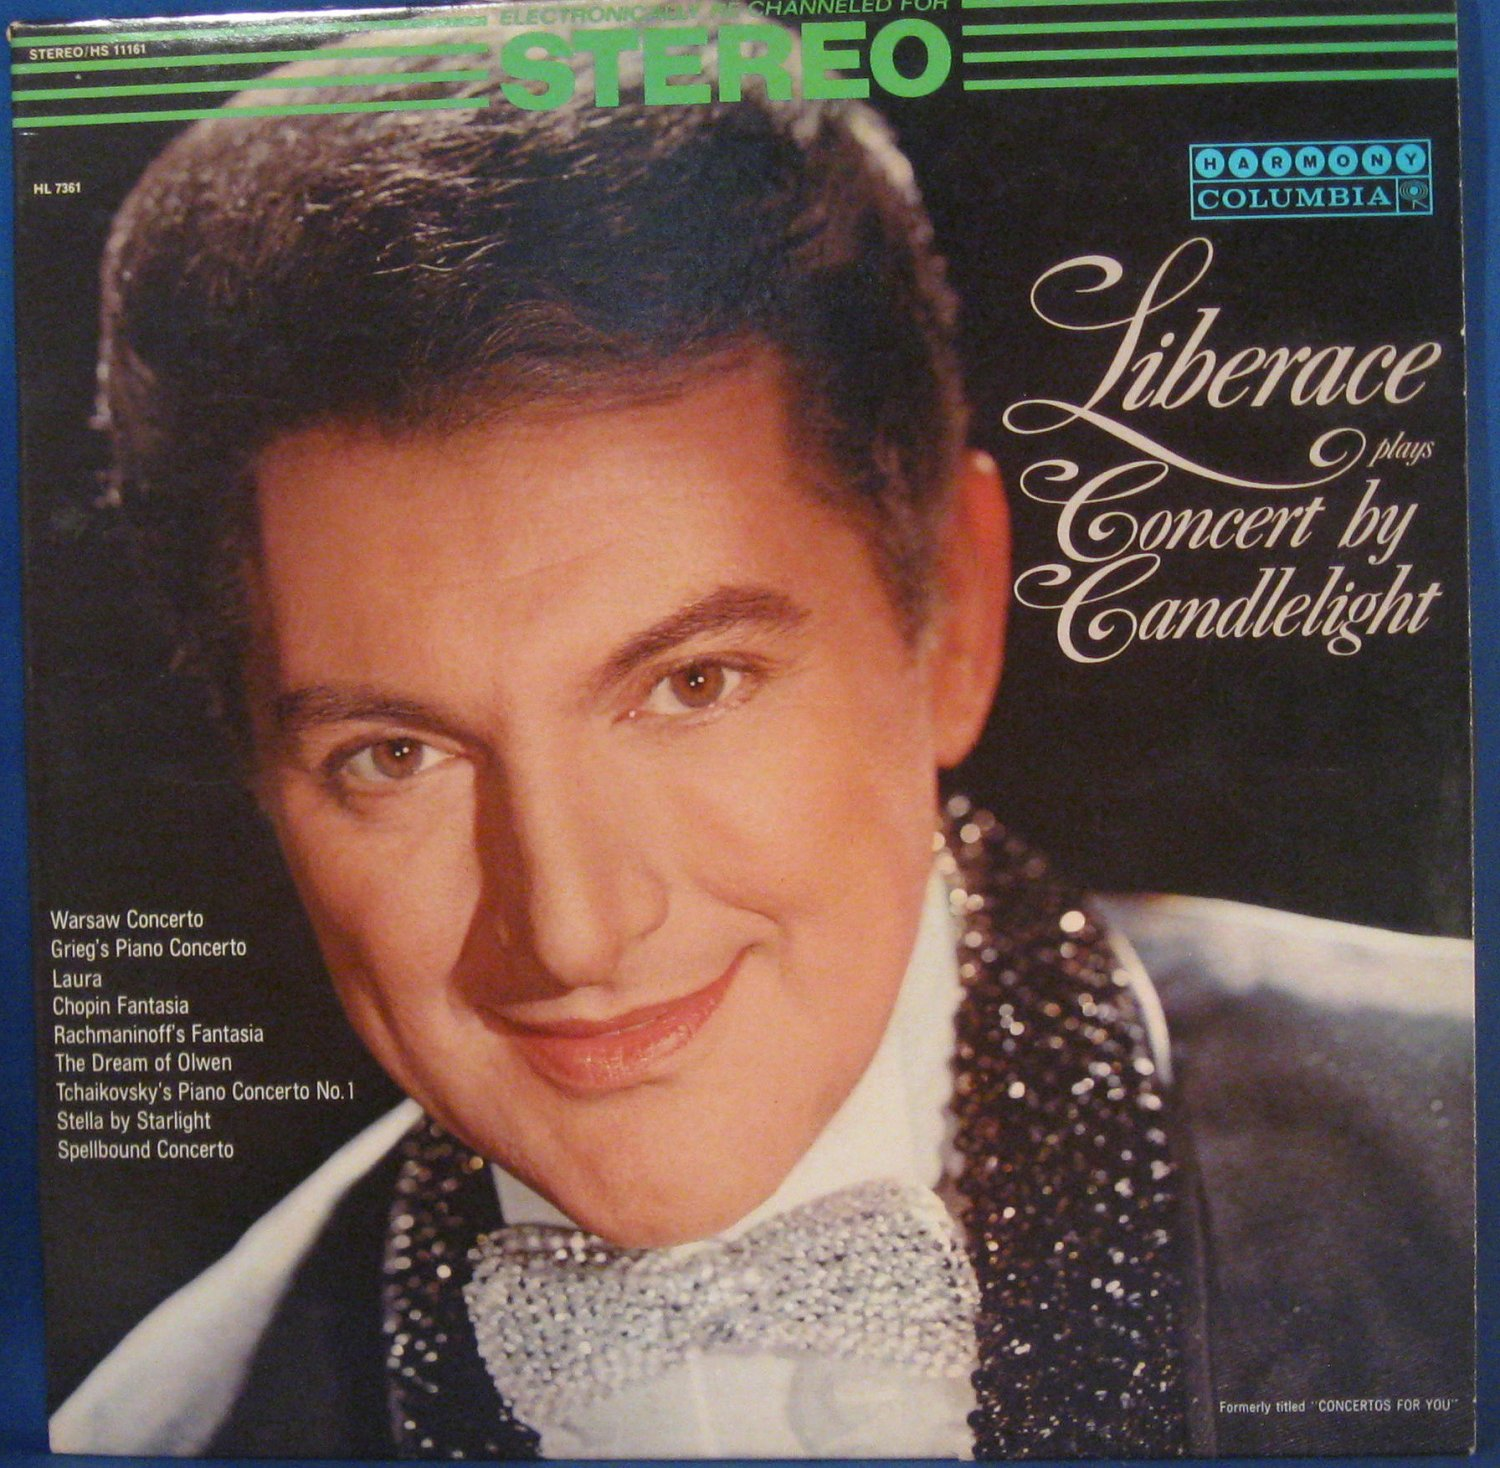 Liberace plays Concert by Candlelight - Vinyl LP